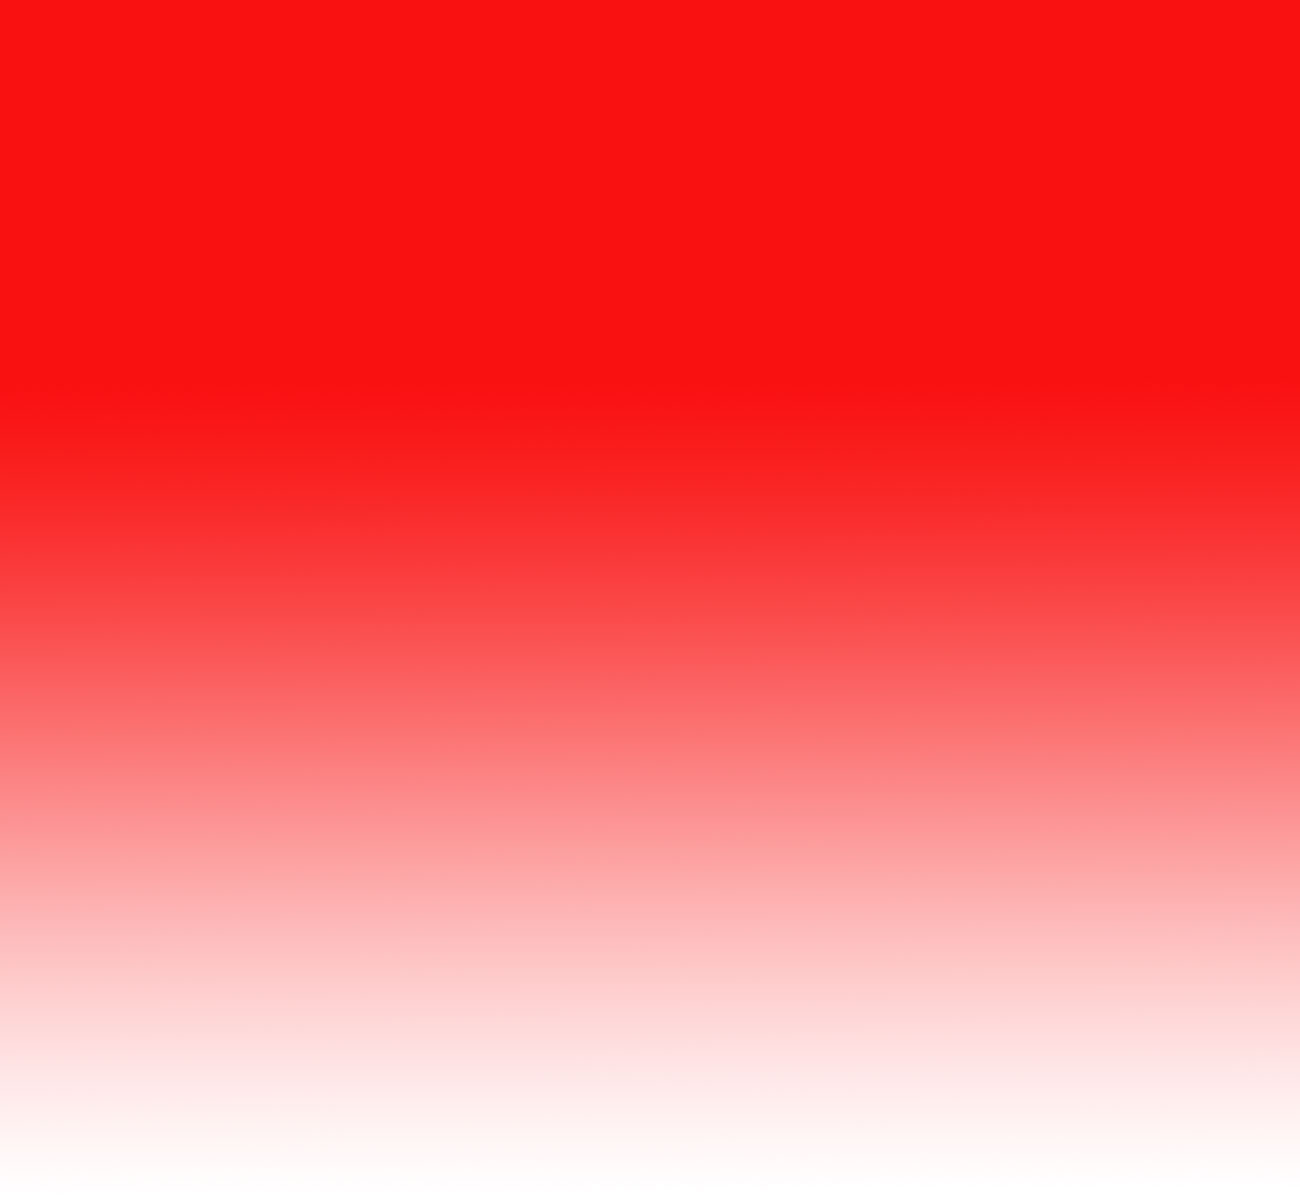 white adn red gradient picture backgrounds for powerpoint templates ppt backgrounds white adn red gradient picture